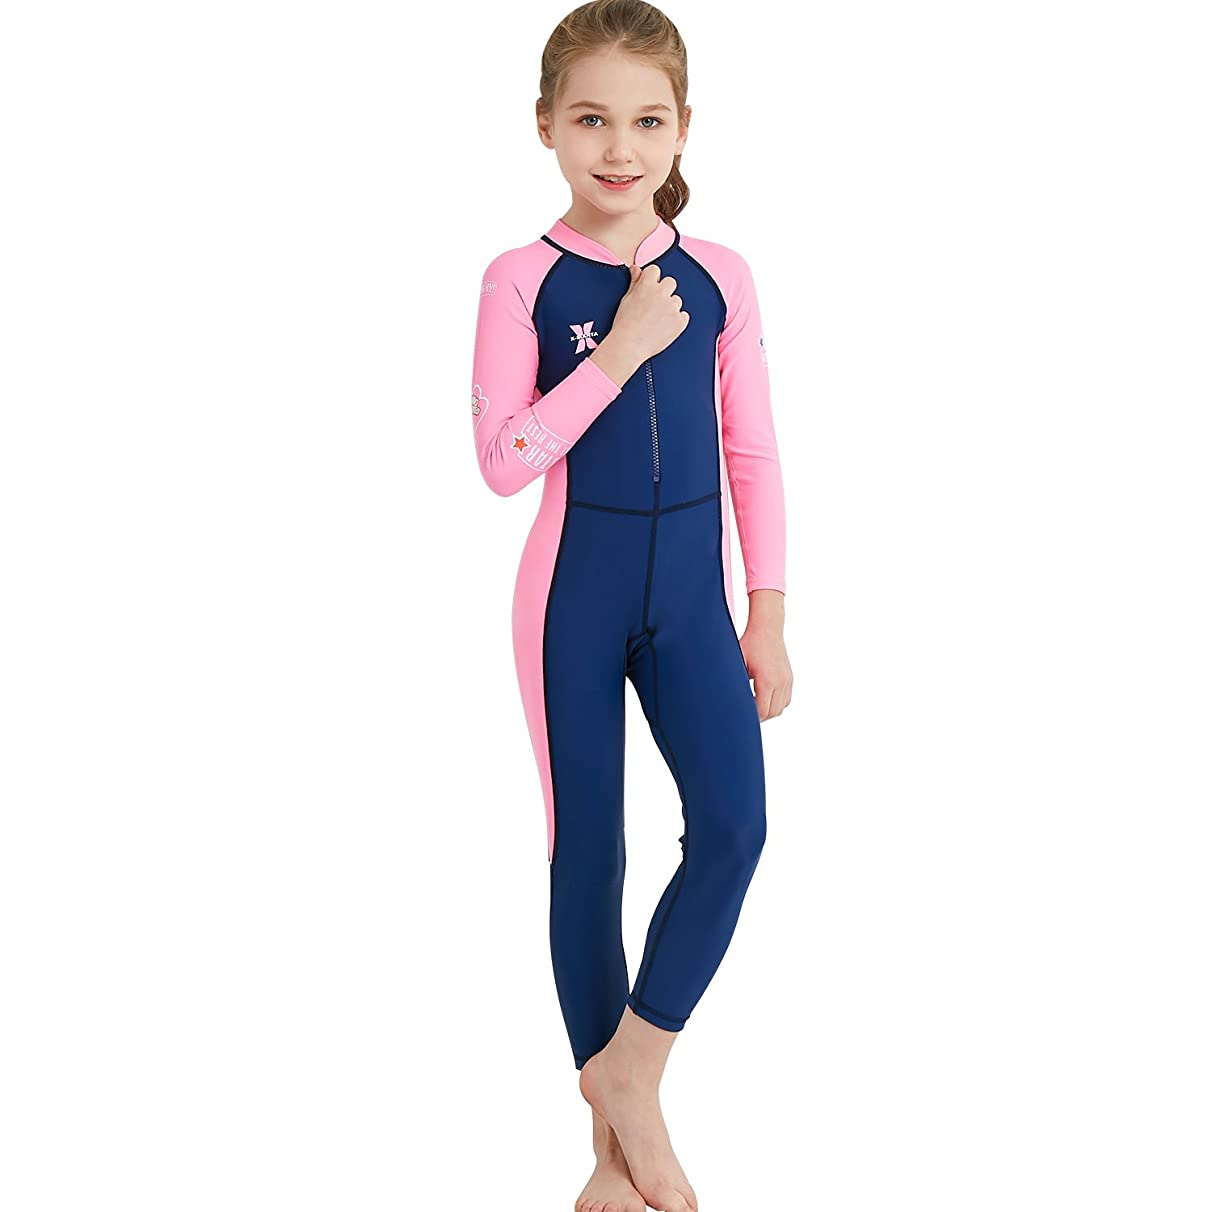 DIVE & SAIL Kids Rash Guard, UPF 50+Wetsuit Long Sleeve Full Swimsuit for Girls and Boys Snorkeling, Diving Scuba and Pool Multi Water Sports (Thin)